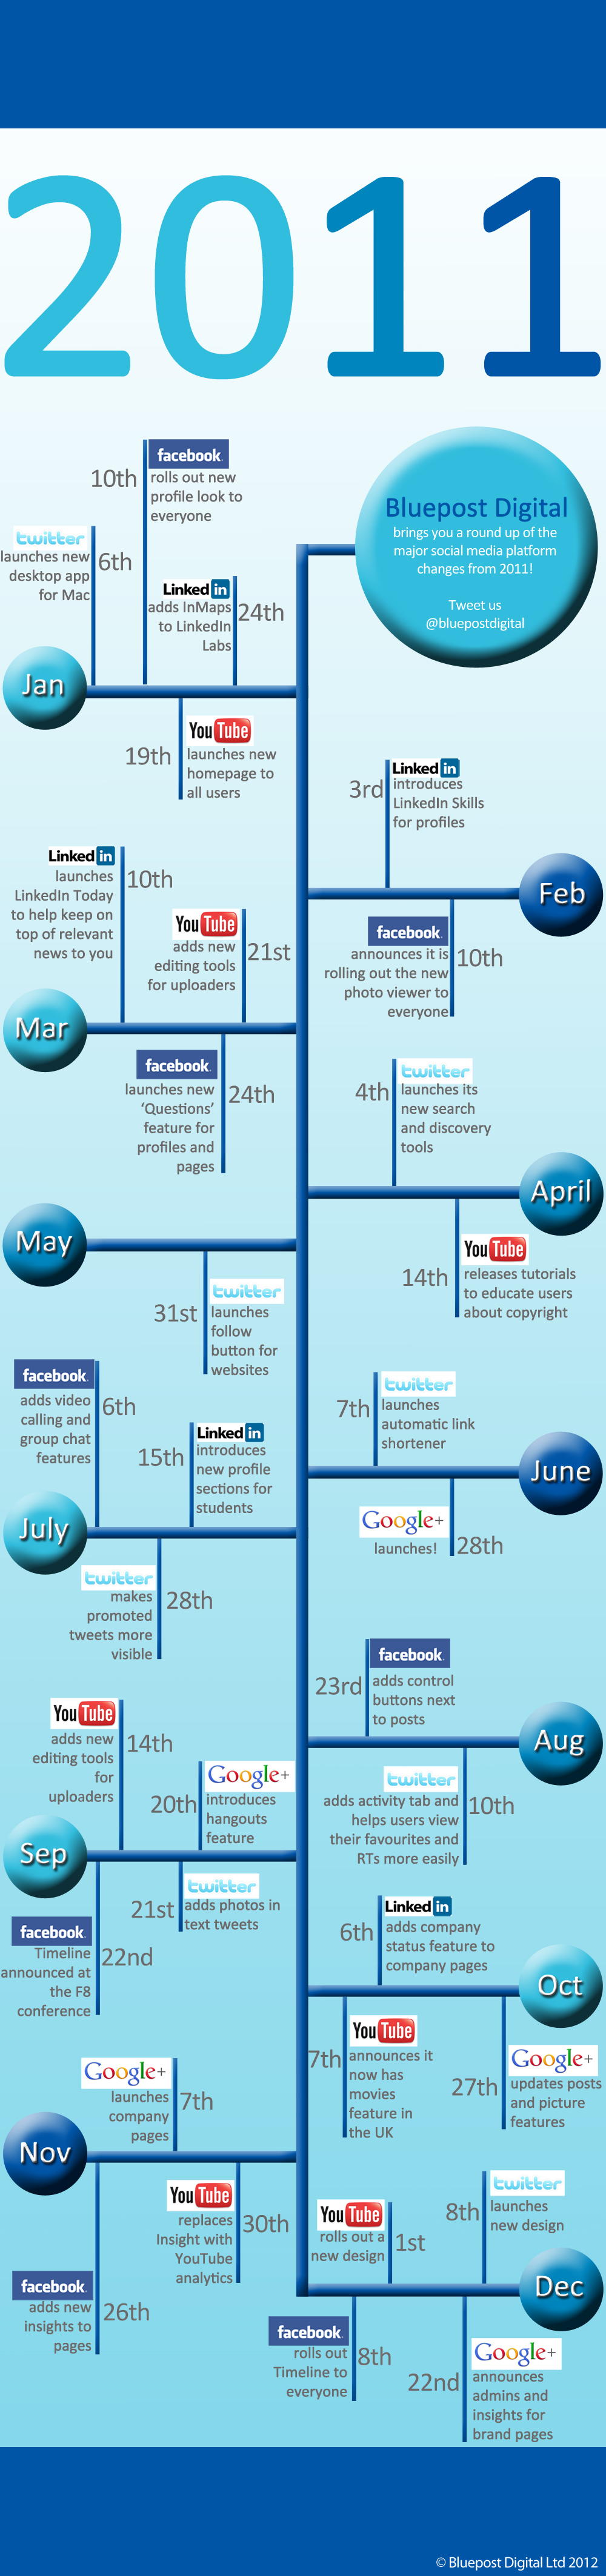 How Social Networks Changed in 2011